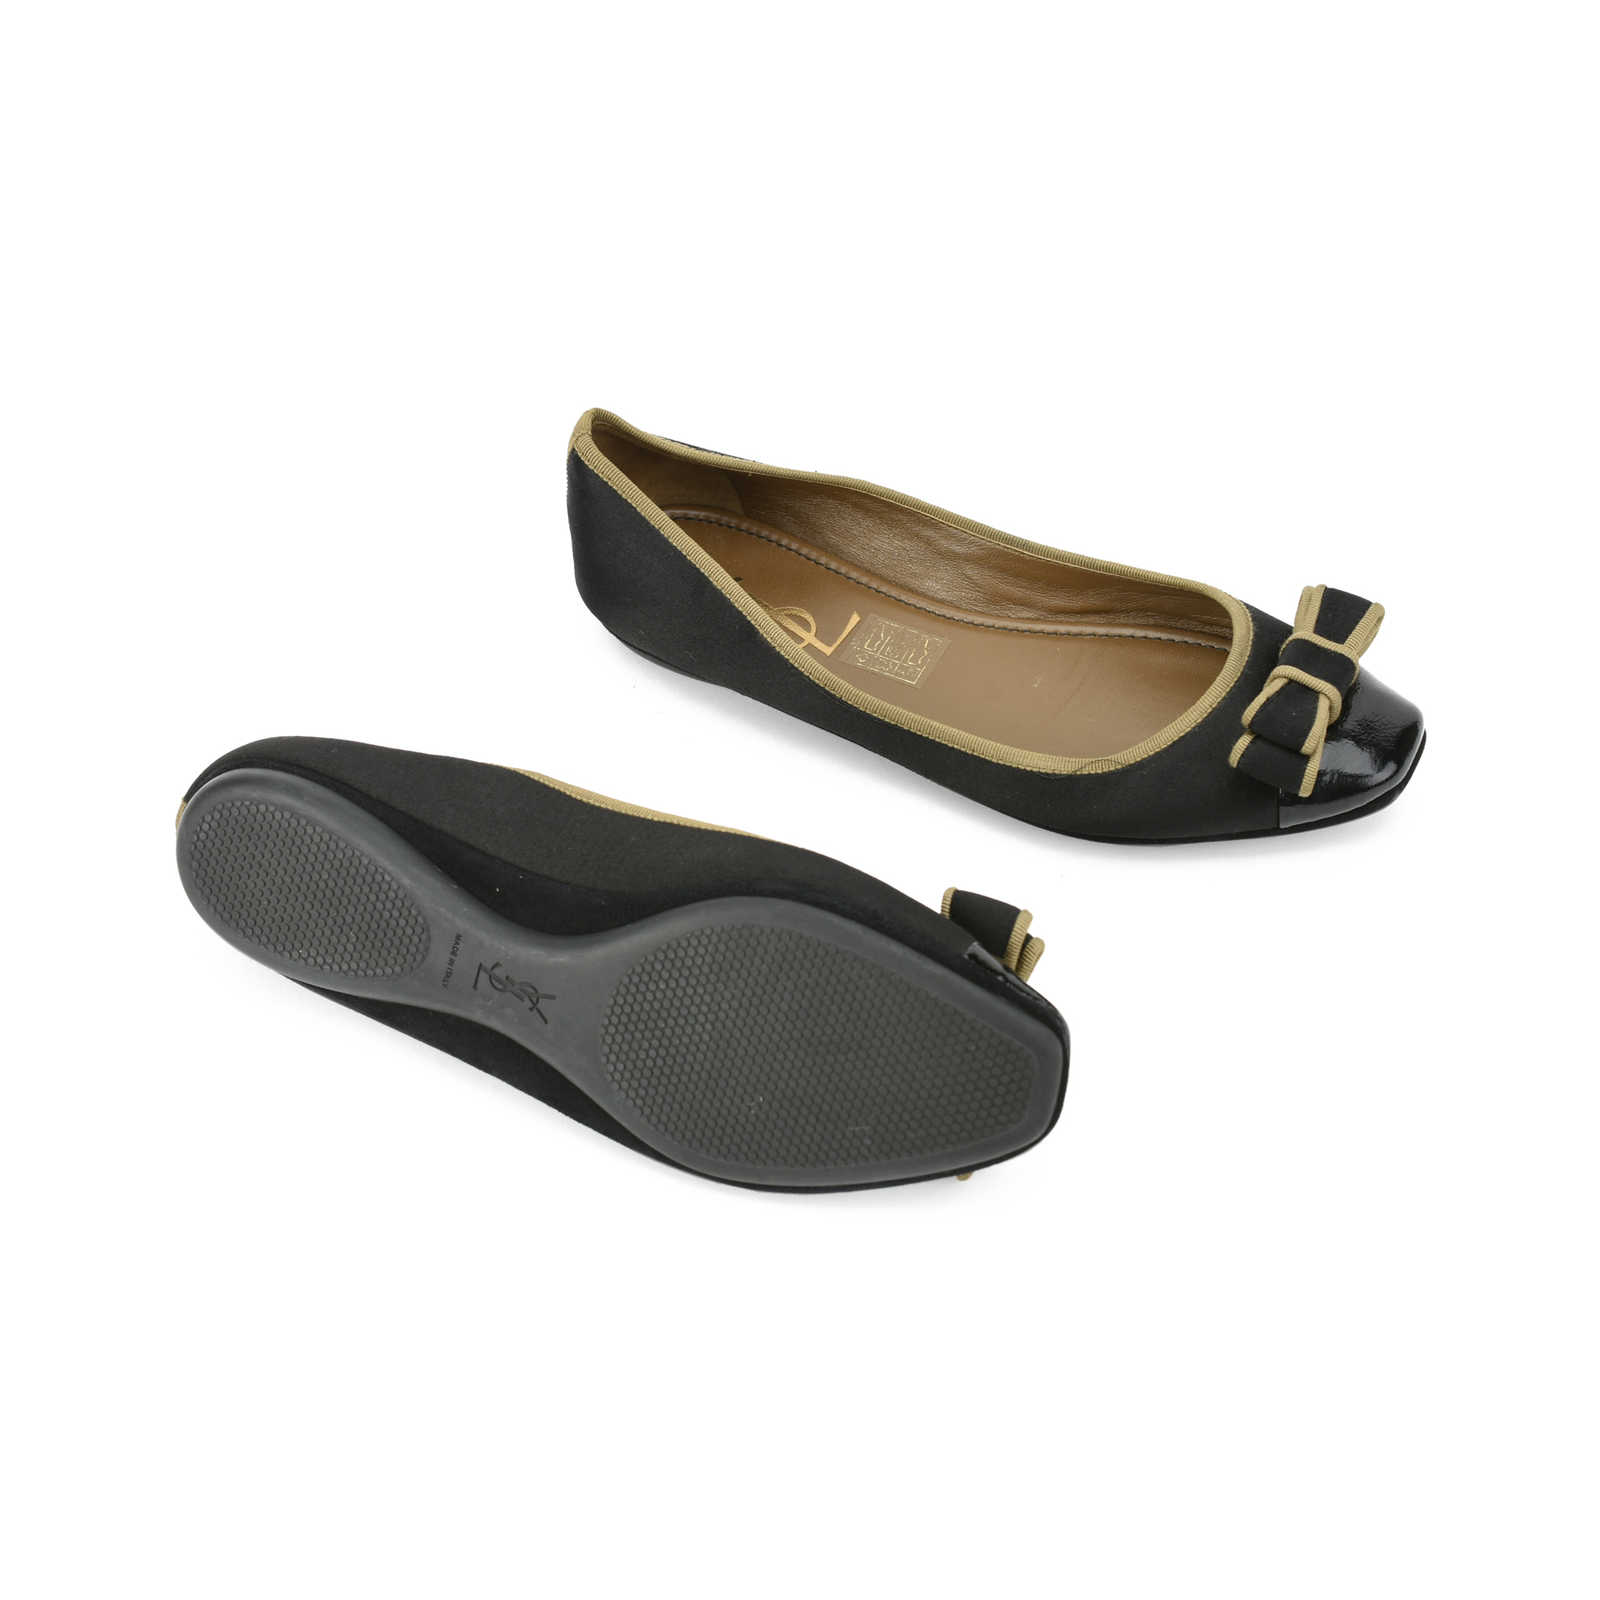 Yves Saint Laurent Satin Bow Flats sale view best for sale looking for cheap online wiki sale latest collections 4ul4f